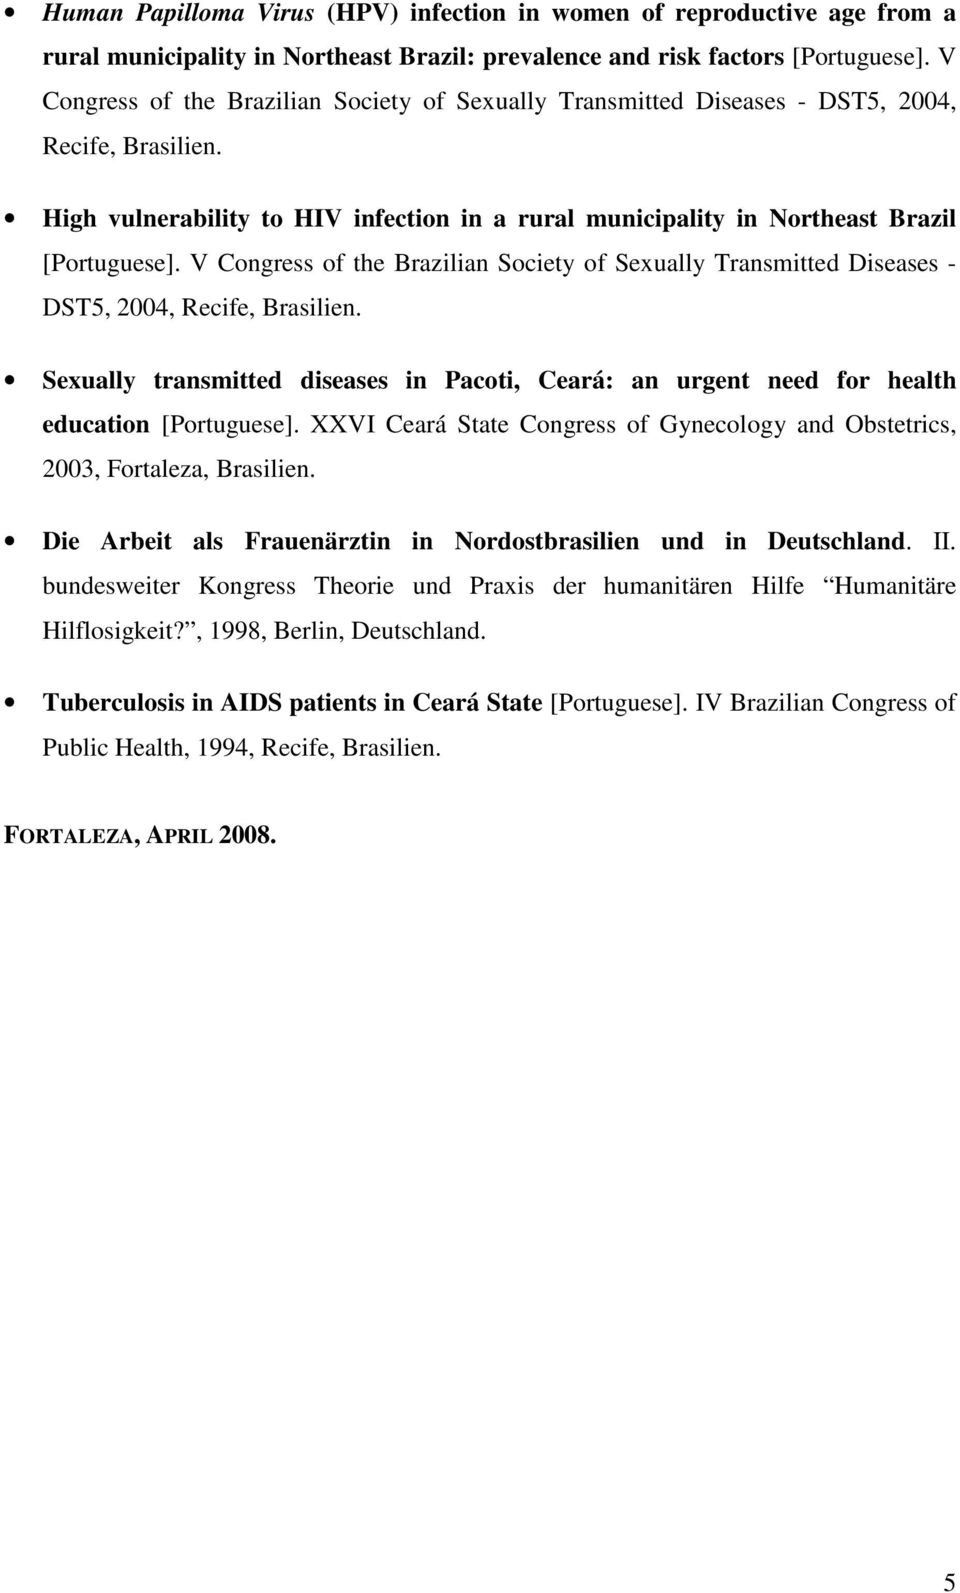 V Congress of the Brazilian Society of Sexually Transmitted Diseases - DST5, 2004, Recife, Brasilien. Sexually transmitted diseases in Pacoti, Ceará: an urgent need for health education [Portuguese].